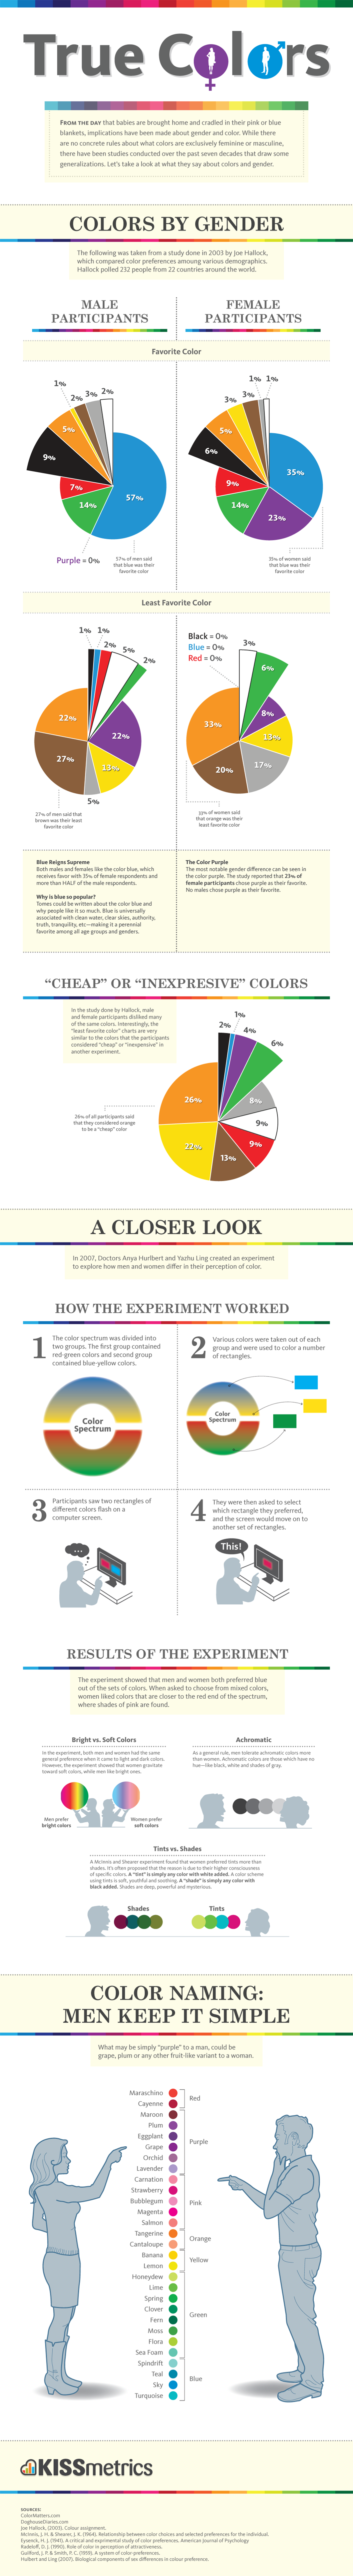 How to choose the best color scheme for your Website?